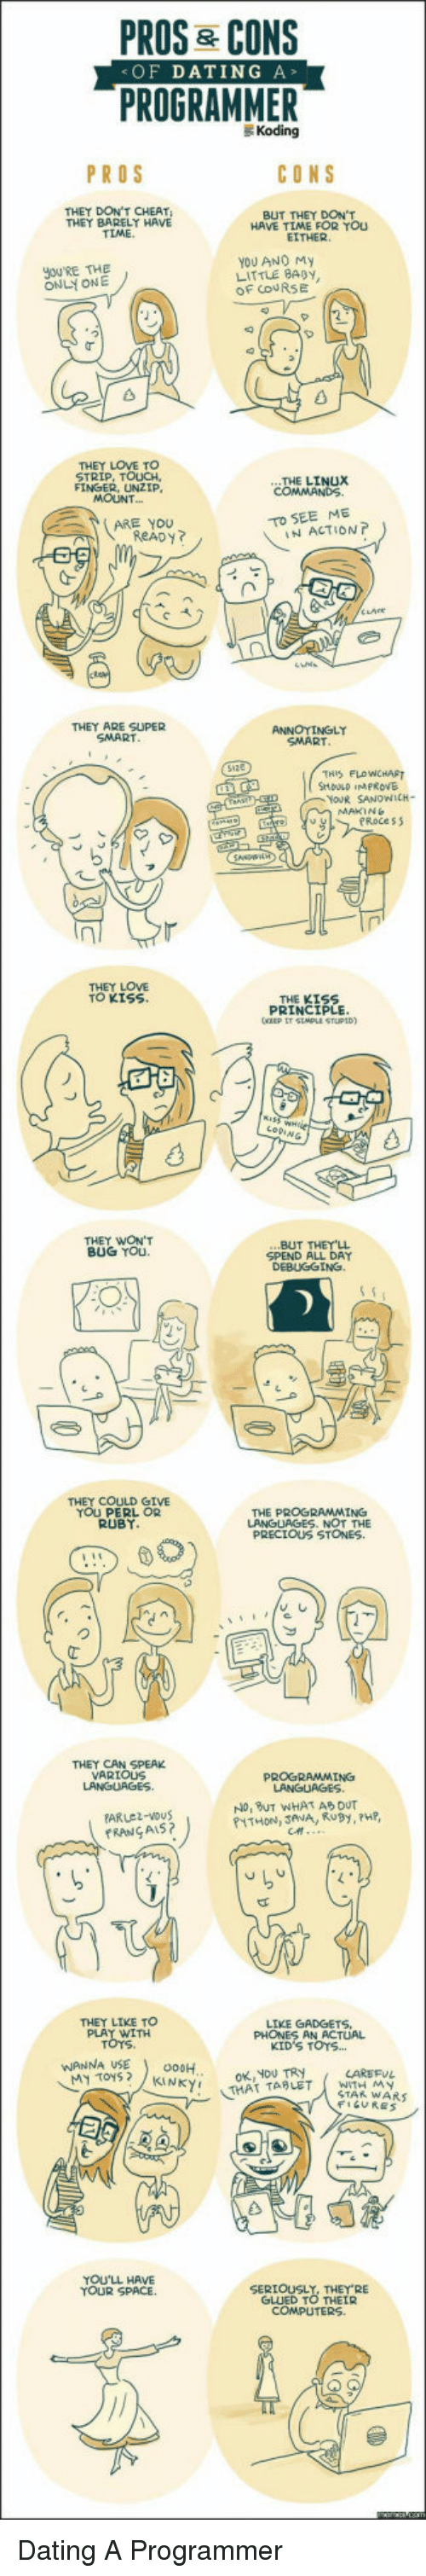 perl: PROS& CONS  PROGRAMMER  <OF DATING A>  Koding  PROS  THEY DON'T CHEAT  THEY BARELY HAVE  TIME  BUT THEY DON'T  HAVE TIME FOR YOU  EITHER  YOU ANO My  LITTLE 8ADY  OF COURSE  JOU'RE THE  THEY LOVE TO  STRIP, TOUCH.  FINGER, UNZIP  THE LINUX  MOUNT  ReADY?  THEY ARE SUPER  THIS FLOWCHAFT  MAKIN  THEY LOVE  TO KISS  THE KISS  PRINCIPLE  THEY WON'T  BUG YOu.  SPEND ALL DAY  DEBUGGING.  THEY COULD GIVE  YOU PERL OR  RUBY  THE PROGRAMMING  THEY CAN SPEAK  VARIOUS  PROGRAMMING  No, BuT WHAT AS DUT  THEY LIKE TO  WITH  PHONES AN ACTUAL  KID'S TOYS...  WANNA USE0H  WITH M y  STAR WARS  THAT TARLET  YOU'LL HAVE  TOUR SPACE.  SERIOUSLY, THEY RE  GLUED TO THEIR Dating A Programmer